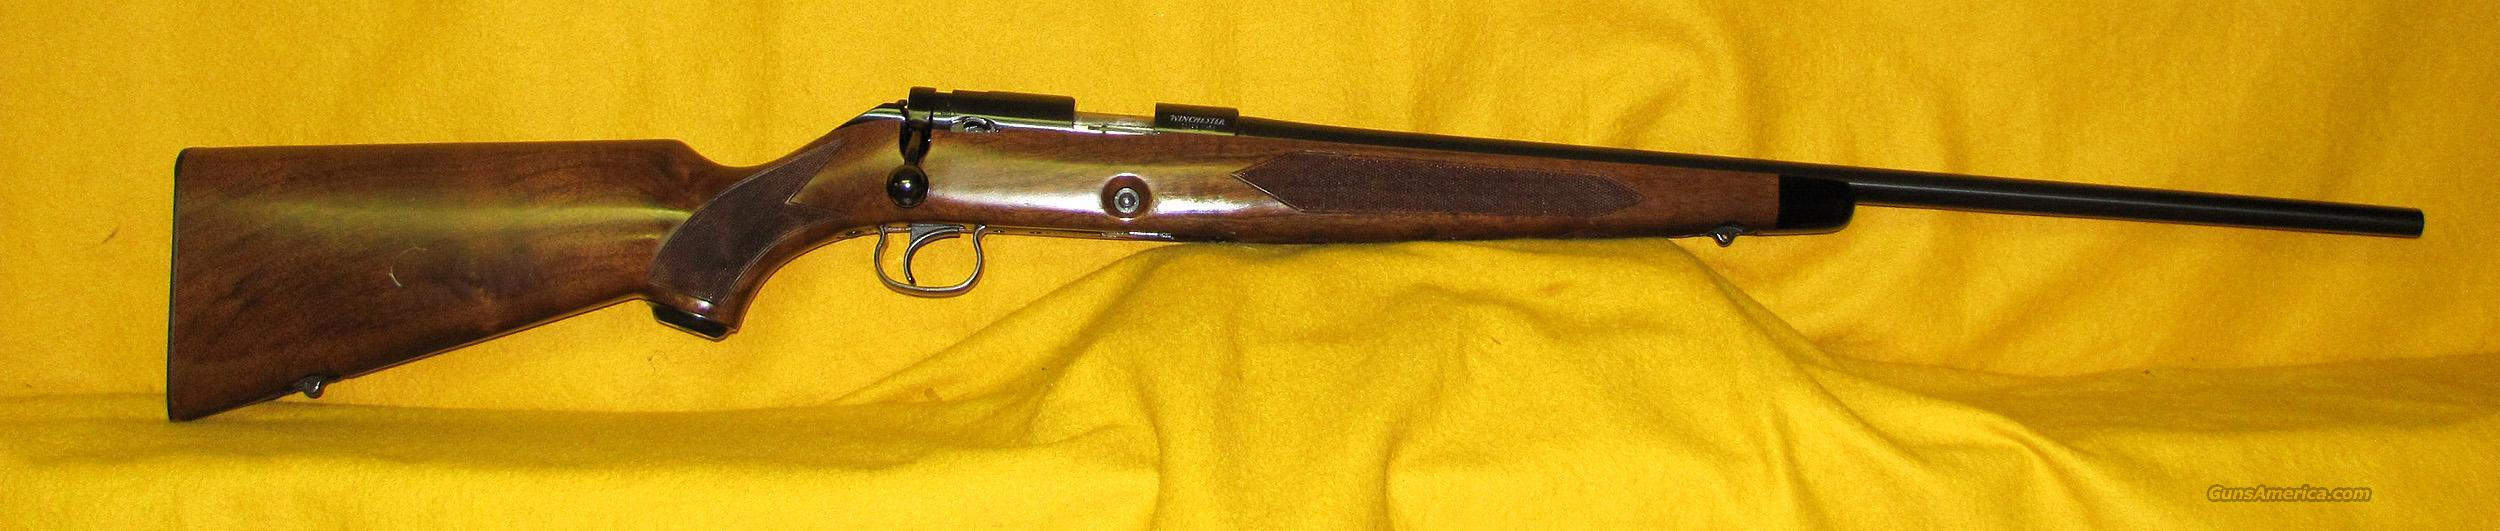 WINCHESTER 52 ( SPORTING RIFLE ) JAPAN  Guns > Rifles > Winchester Rifles - Modern Bolt/Auto/Single > Other Bolt Action